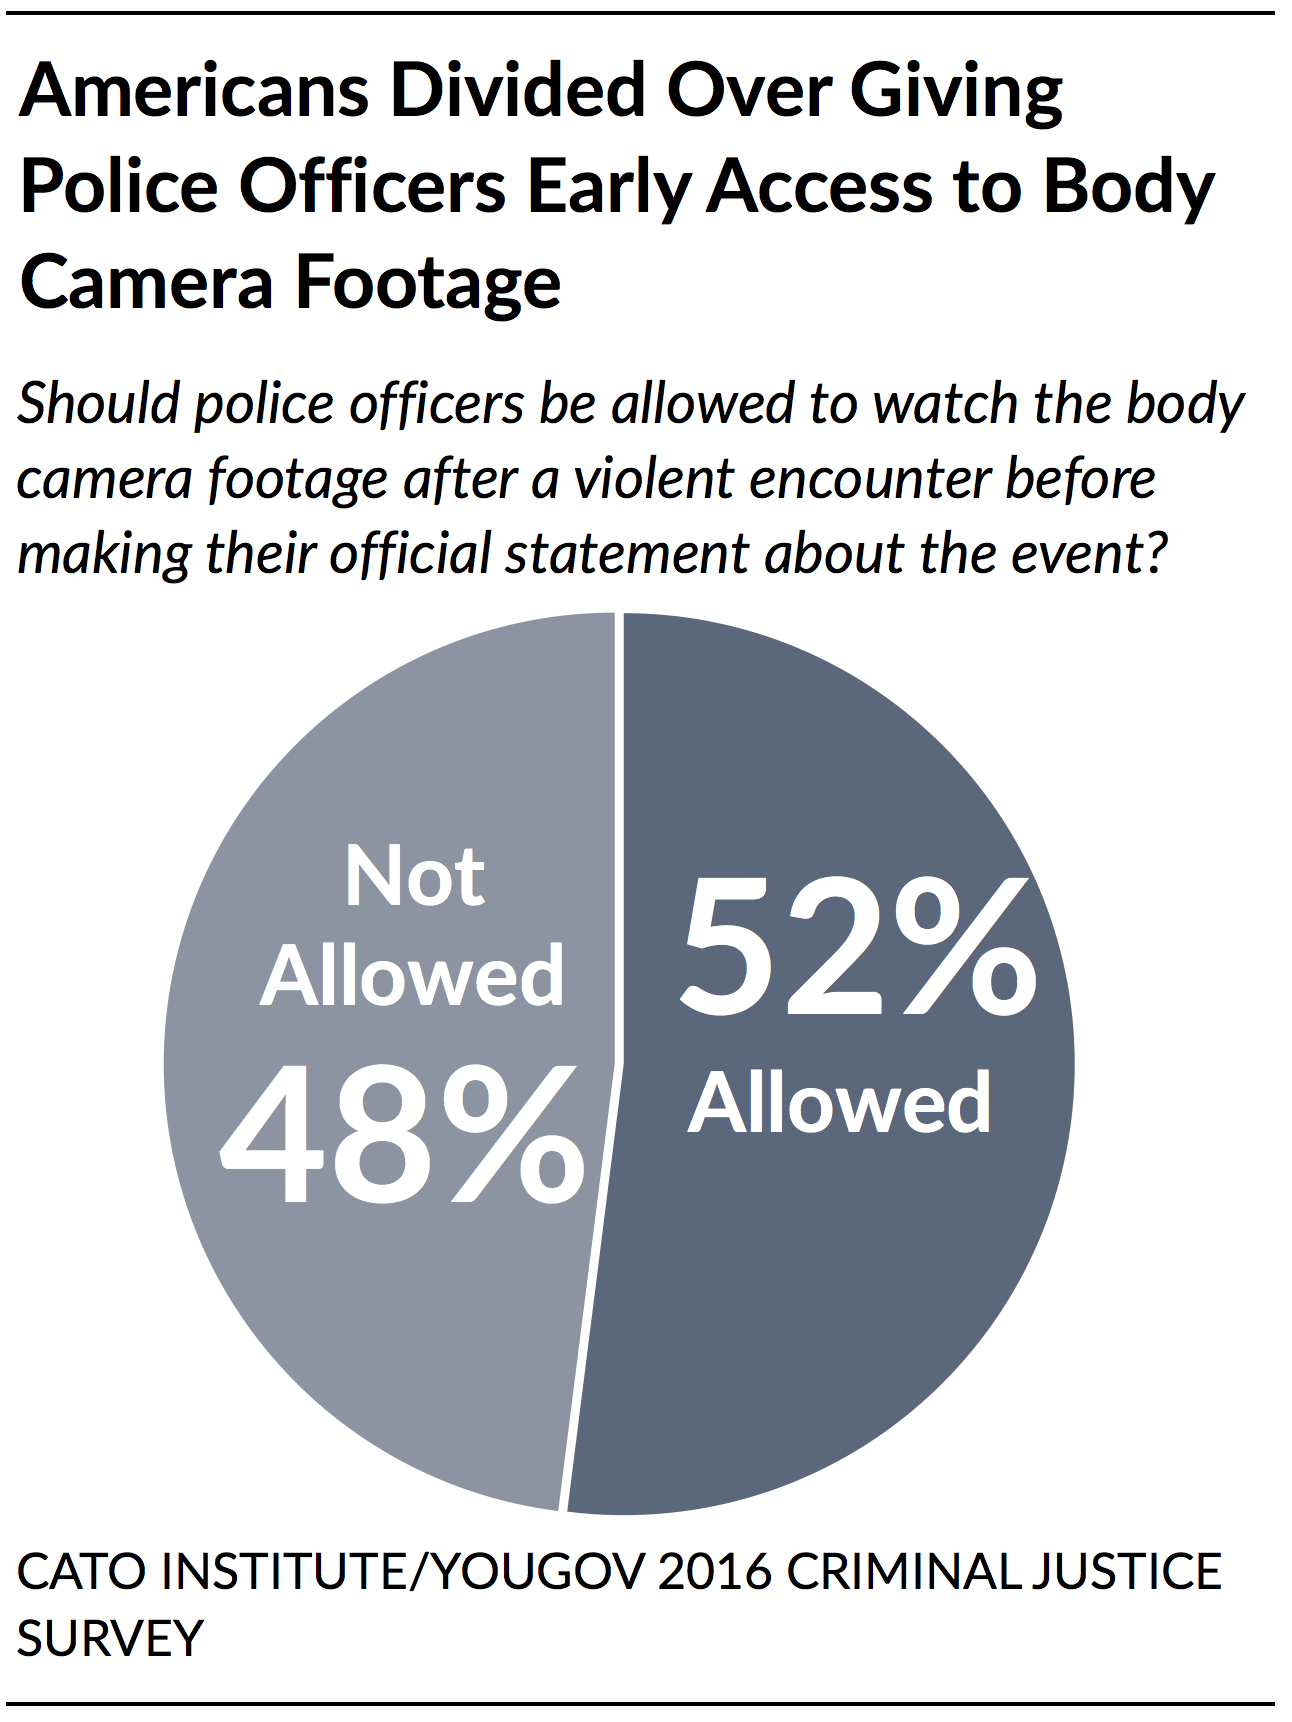 Policing In America Understanding Public Attitudes Toward The  A Majority  Of Those With A Favorable Opinion Of Police In General Say  Officers Should Be Allowed To Watch The Video Footage Before Making A  Statement Essay On Religion And Science also The Yellow Wallpaper Essays  Essays On Health Care Reform